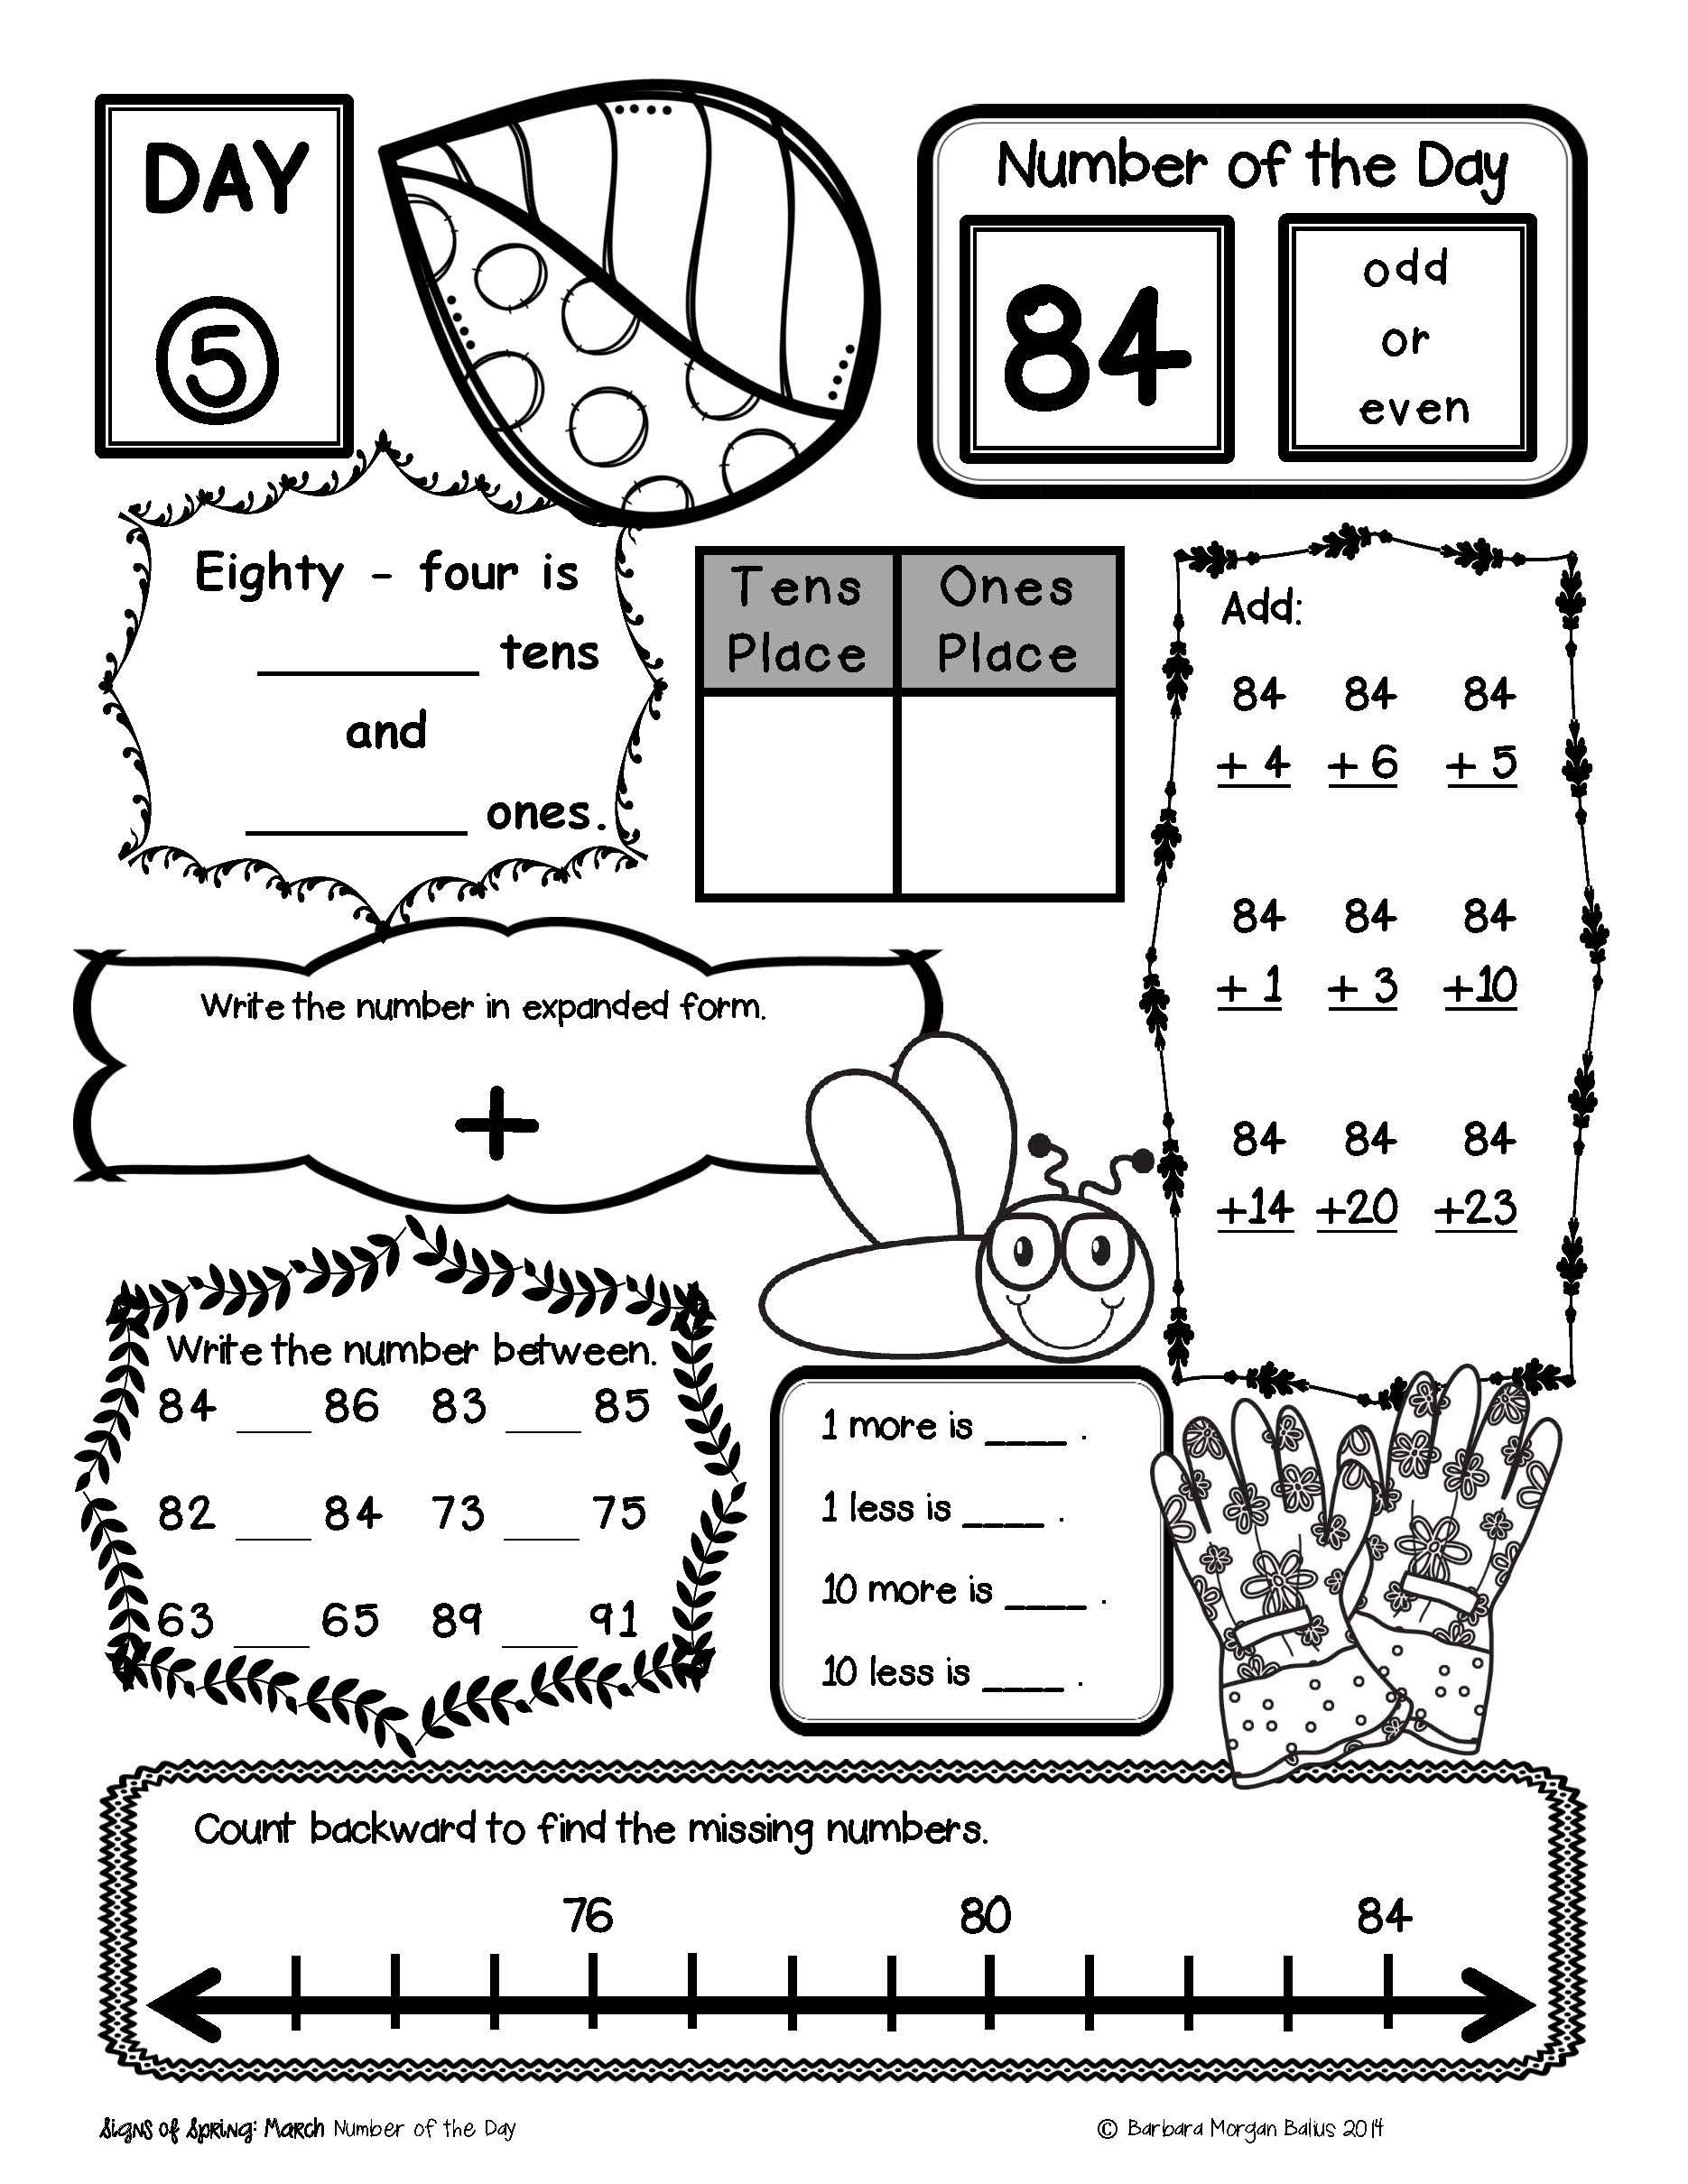 Russian Math Worksheets 3k Worksheet Printable Worksheets and Activities for